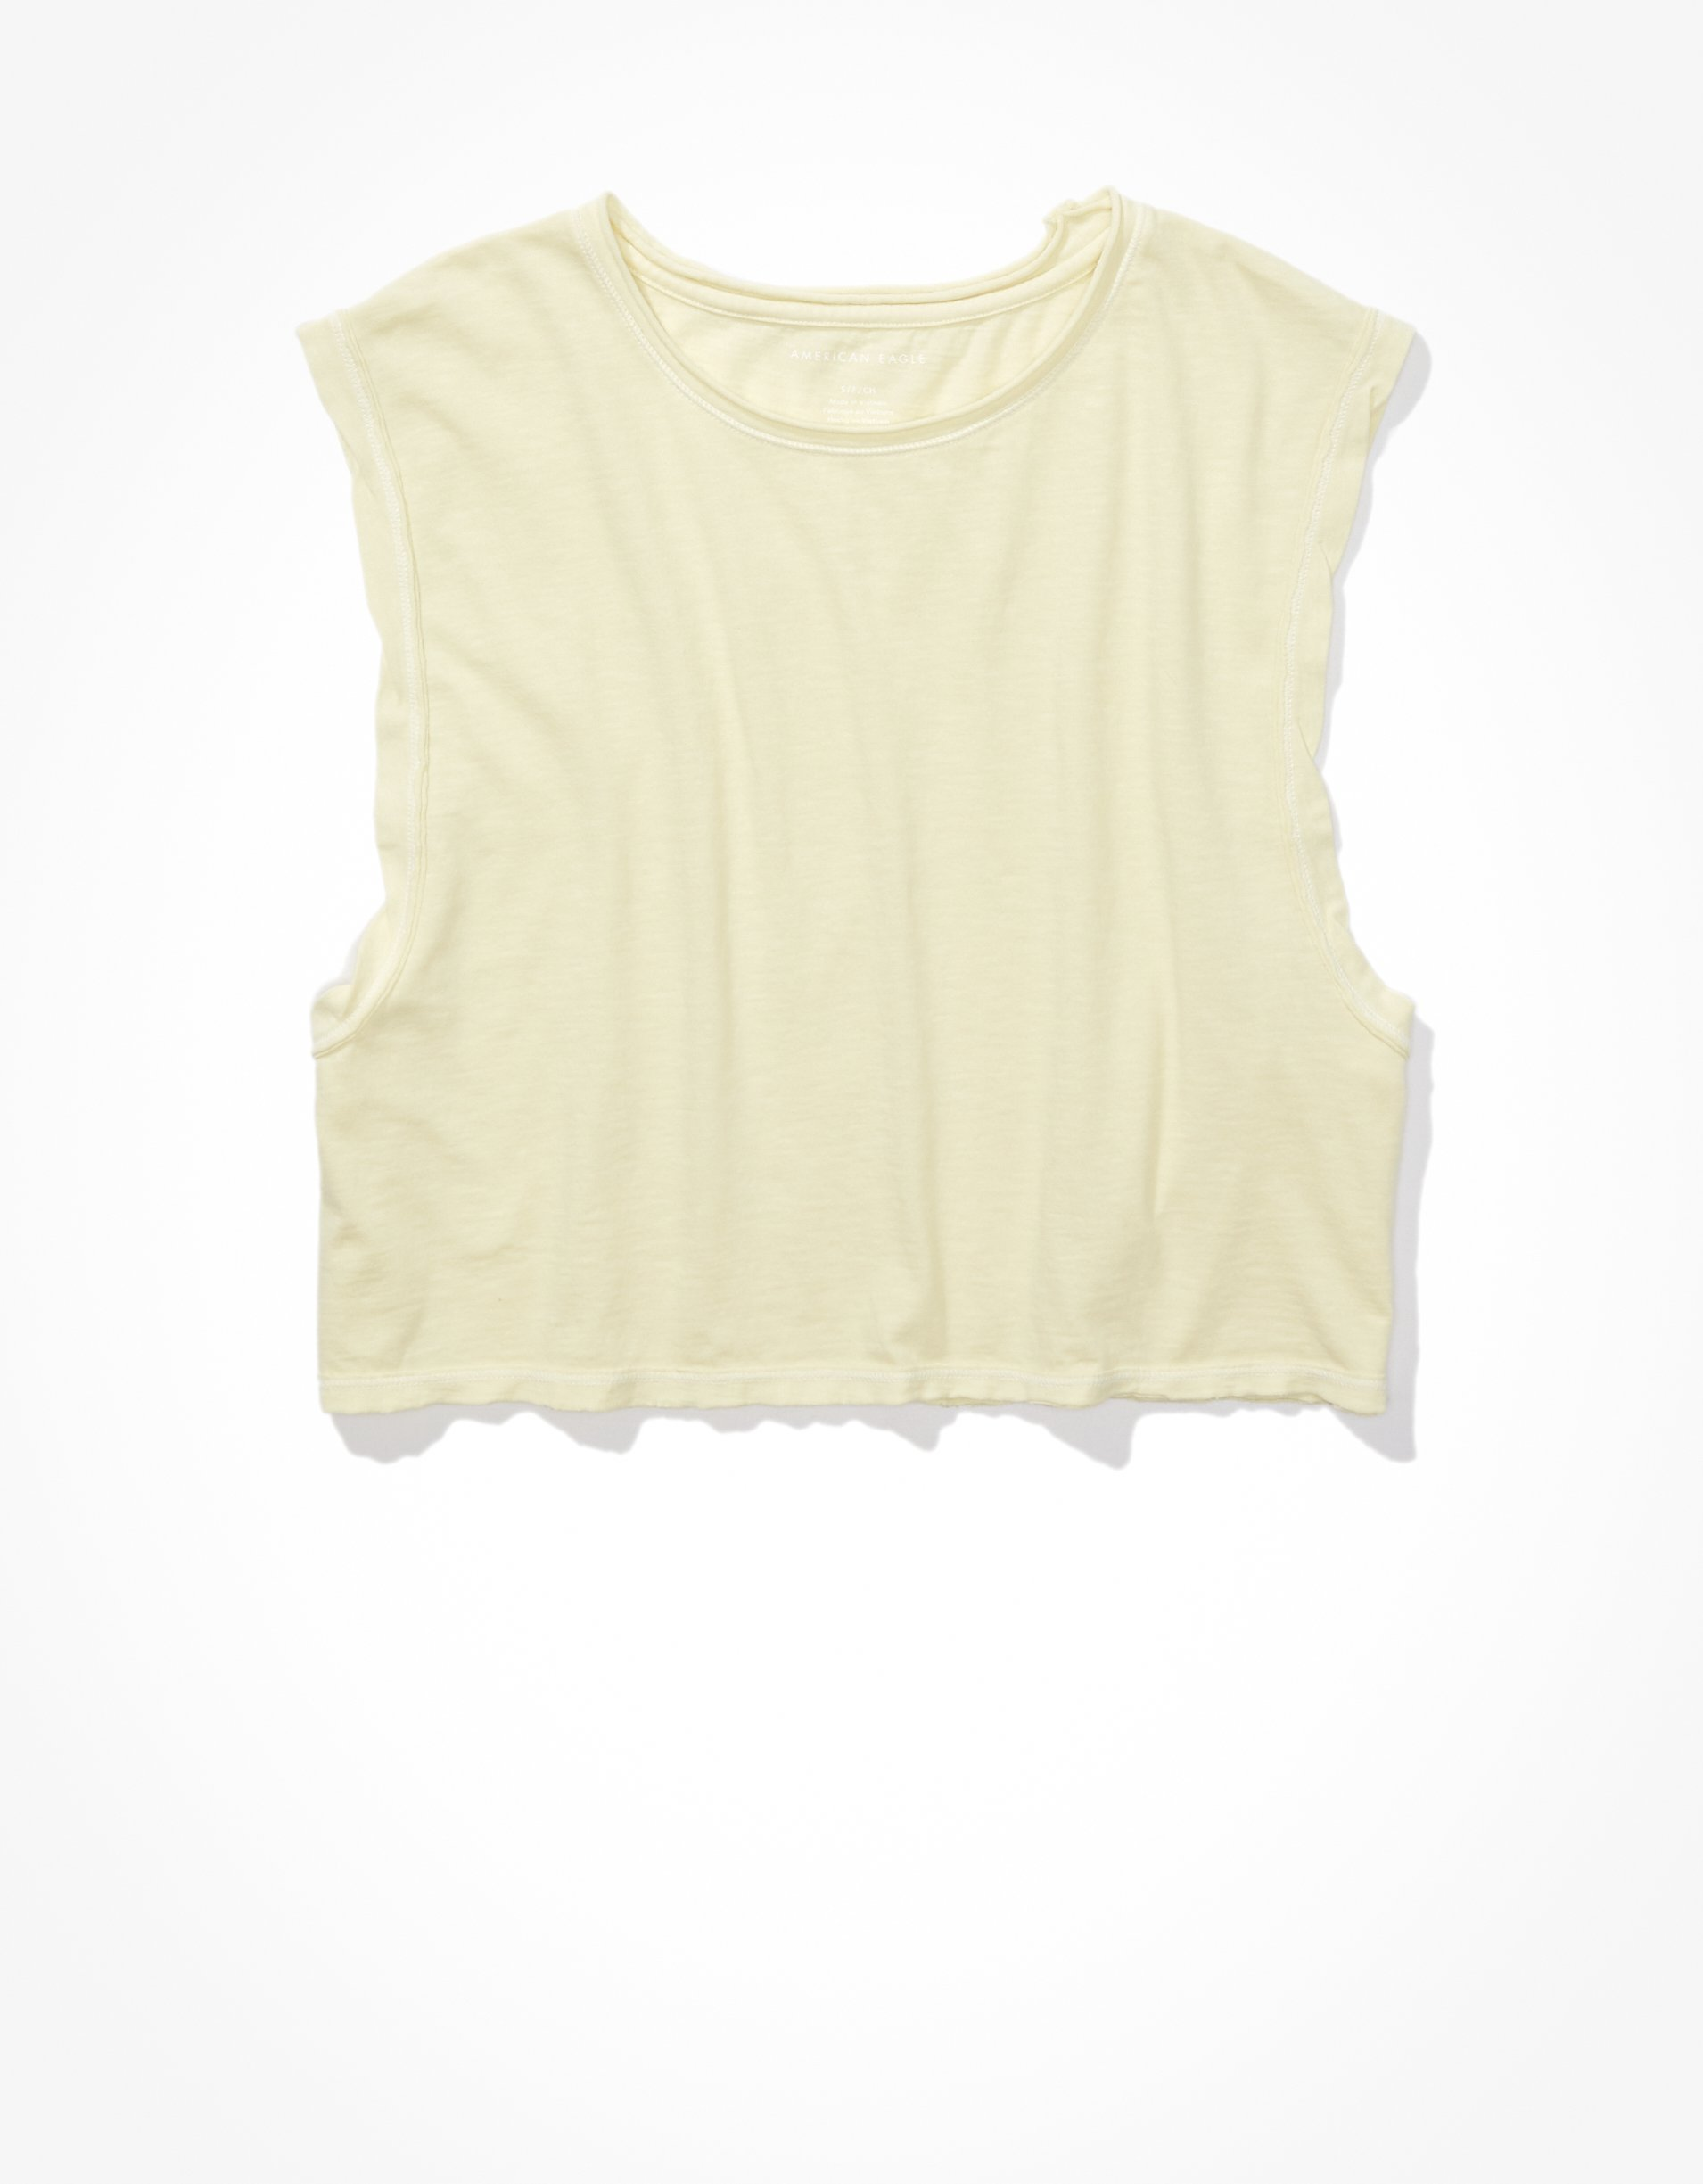 .98 AE Muscle Tank Top + Free shipping over  at American Eagle!